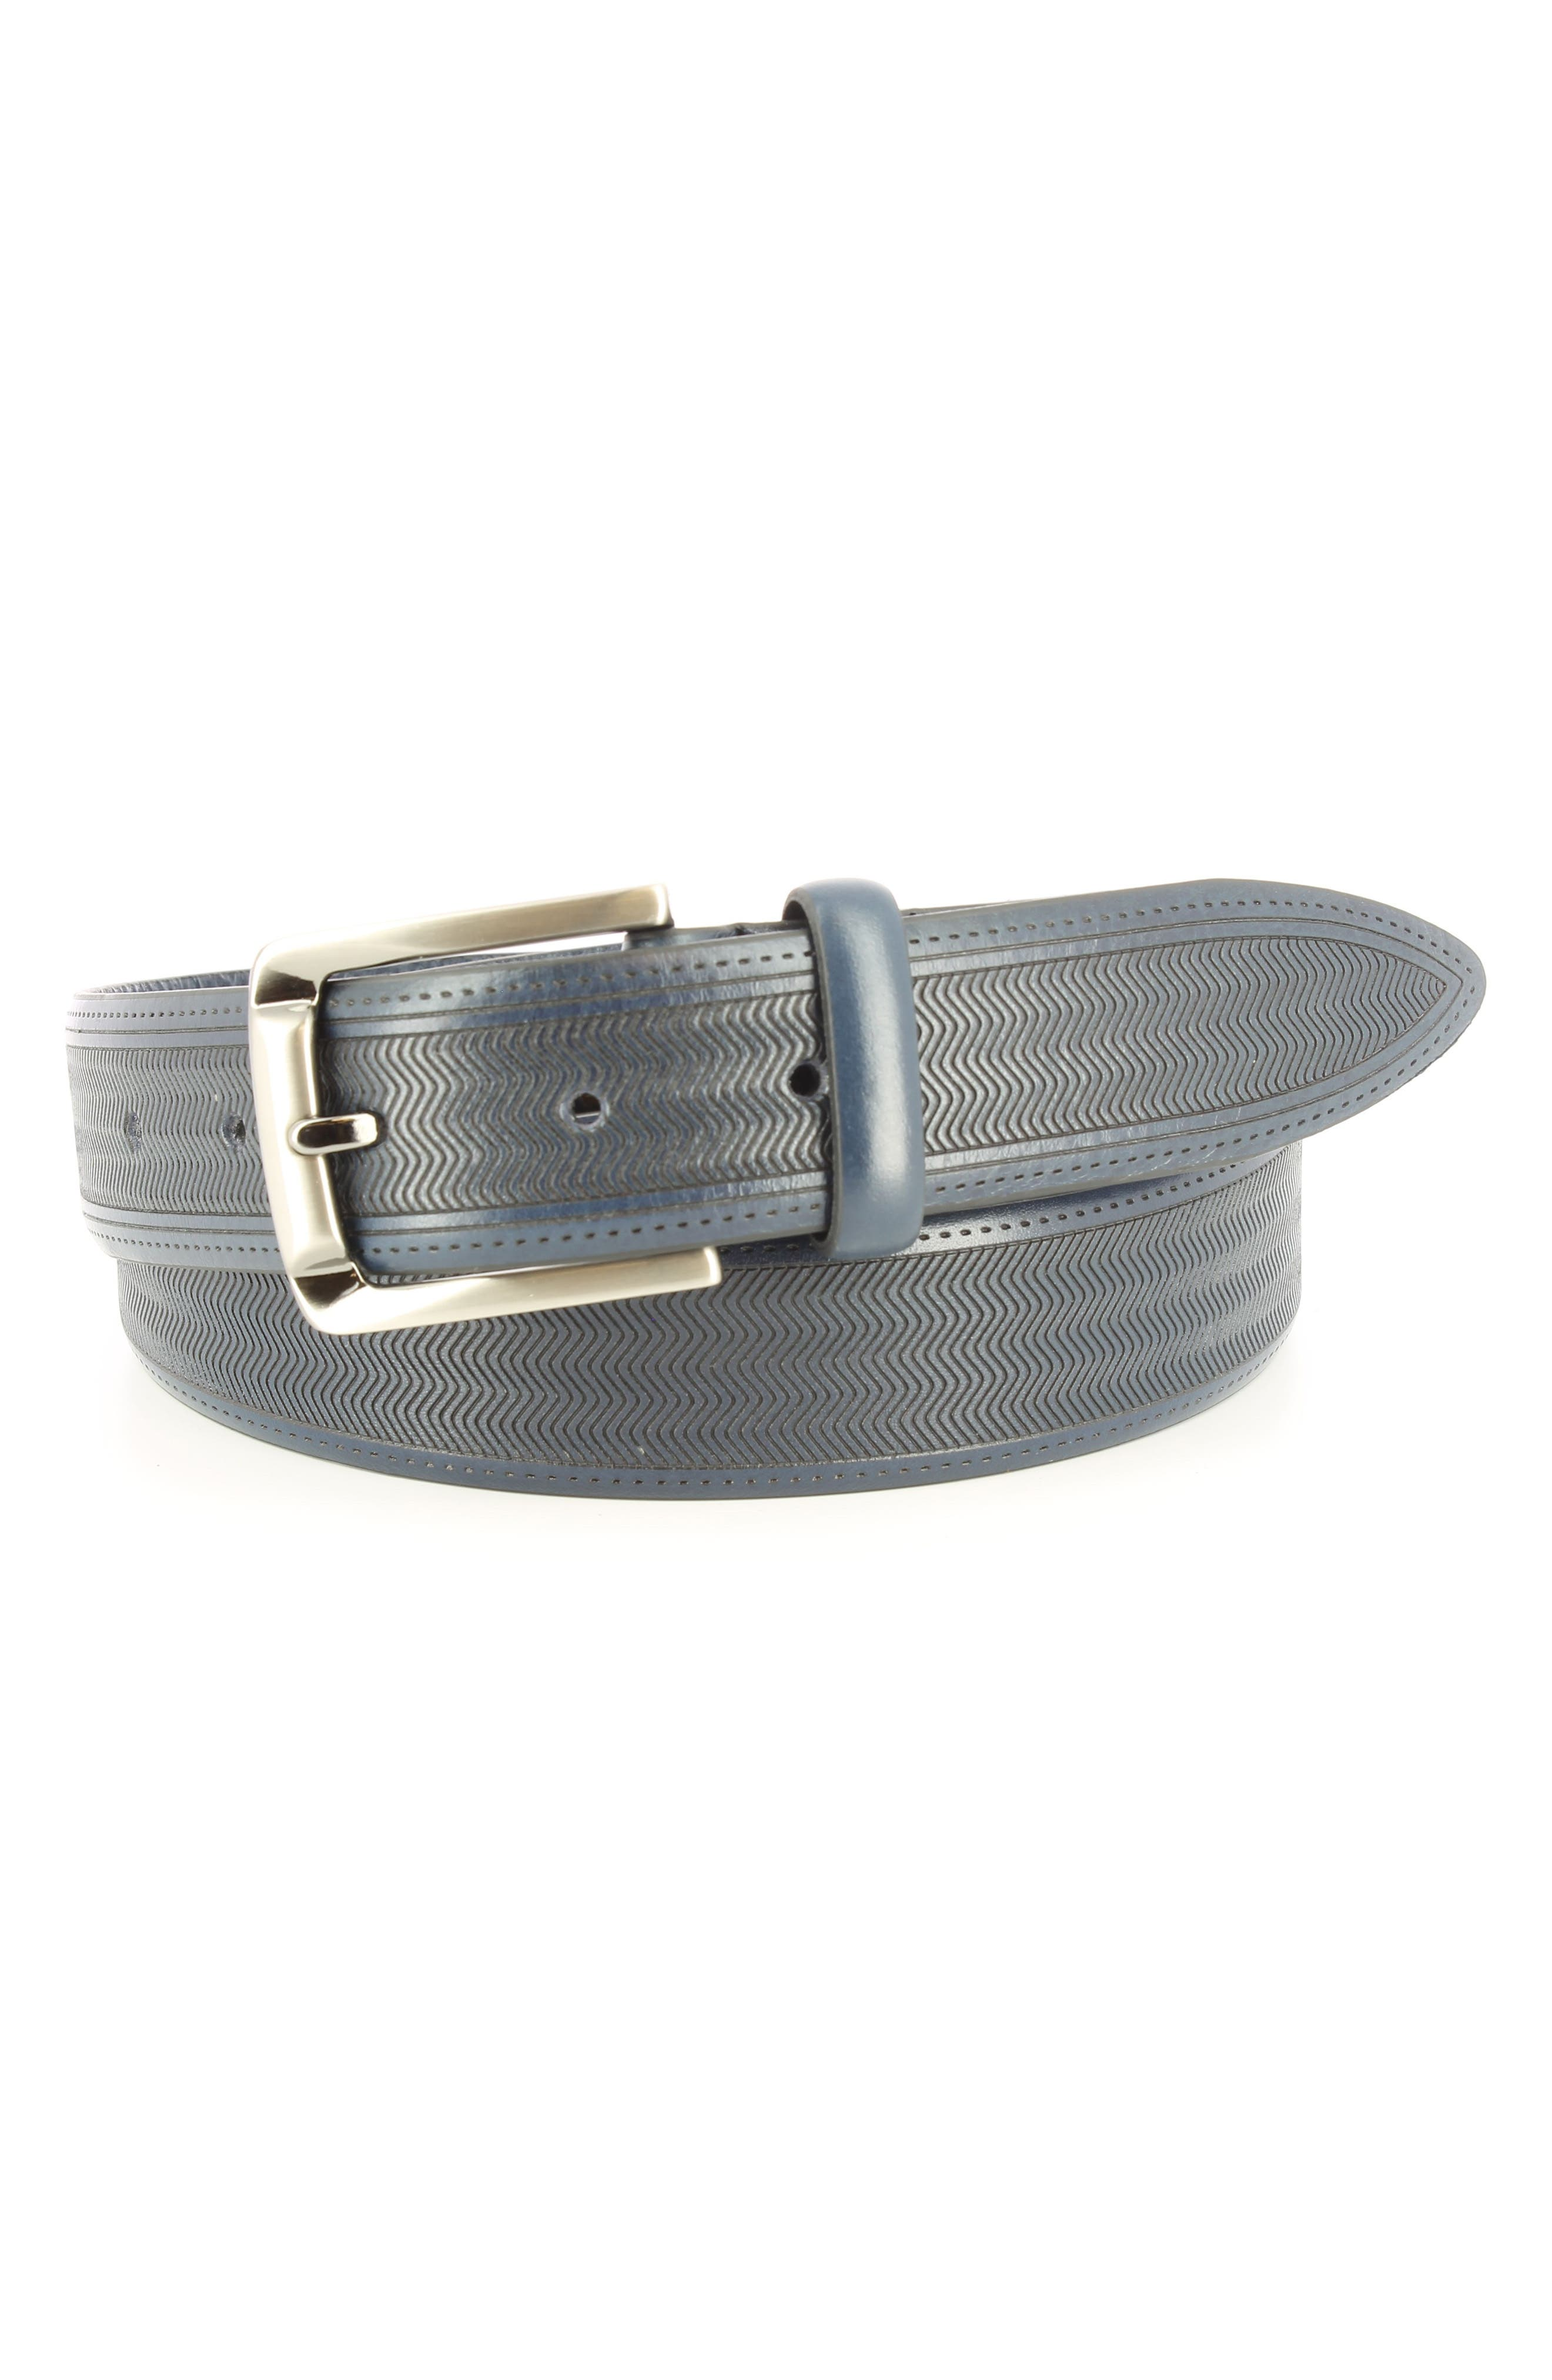 Raspail Leather Belt,                         Main,                         color, Navy